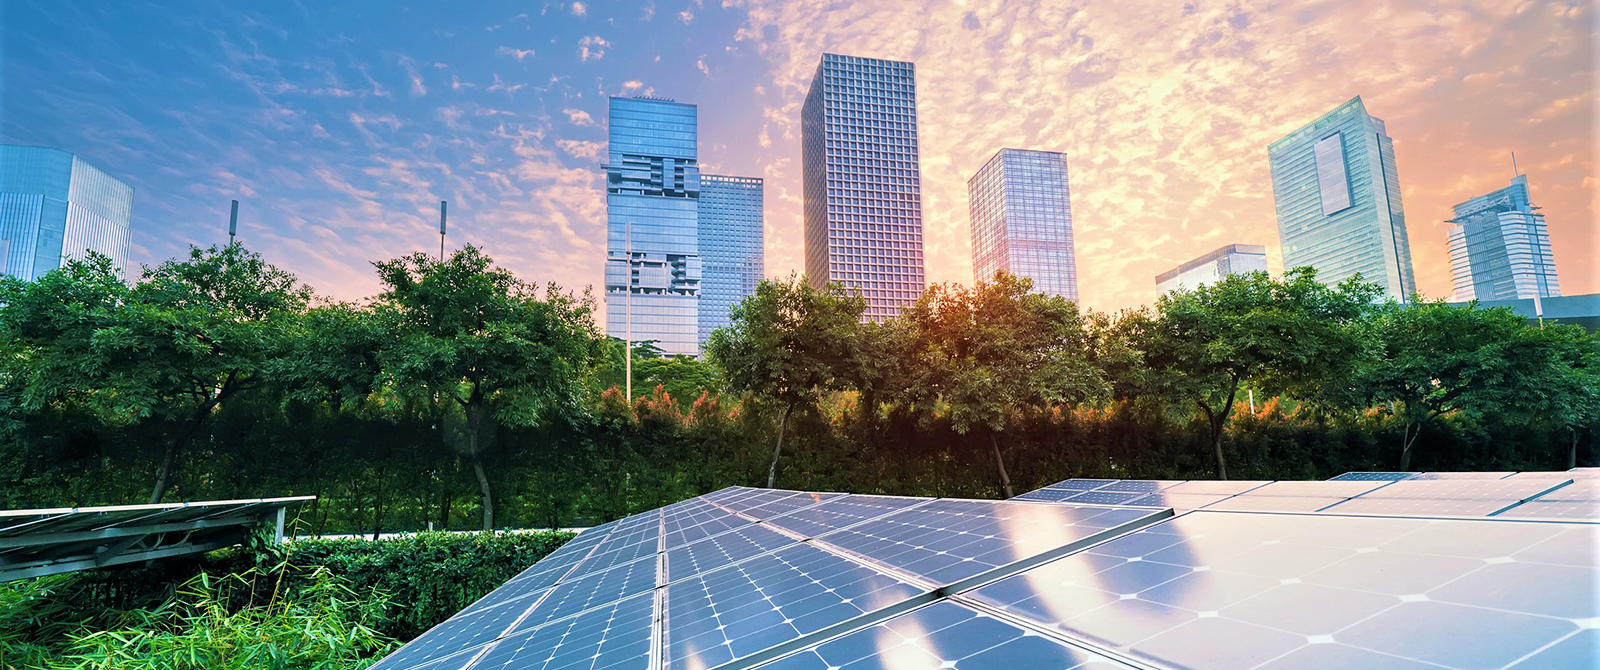 Solar panels with a city in the background